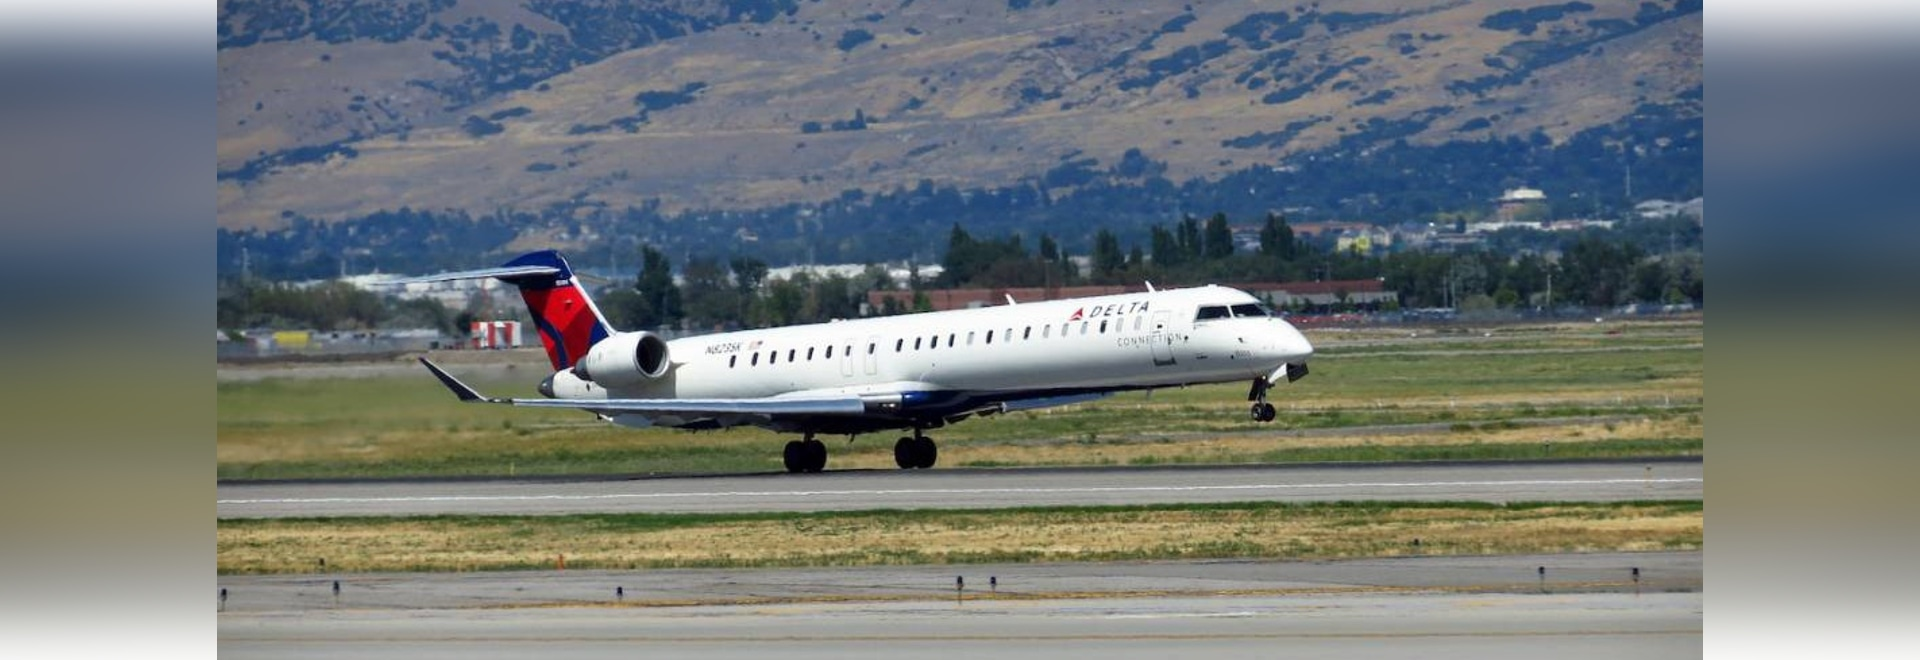 A SkyWest Bombardier CRJ900 takes off from Salt Lake City International Airport. (Photo: Flickr: Creative Commons (BY-SA) by redlegsfan21)